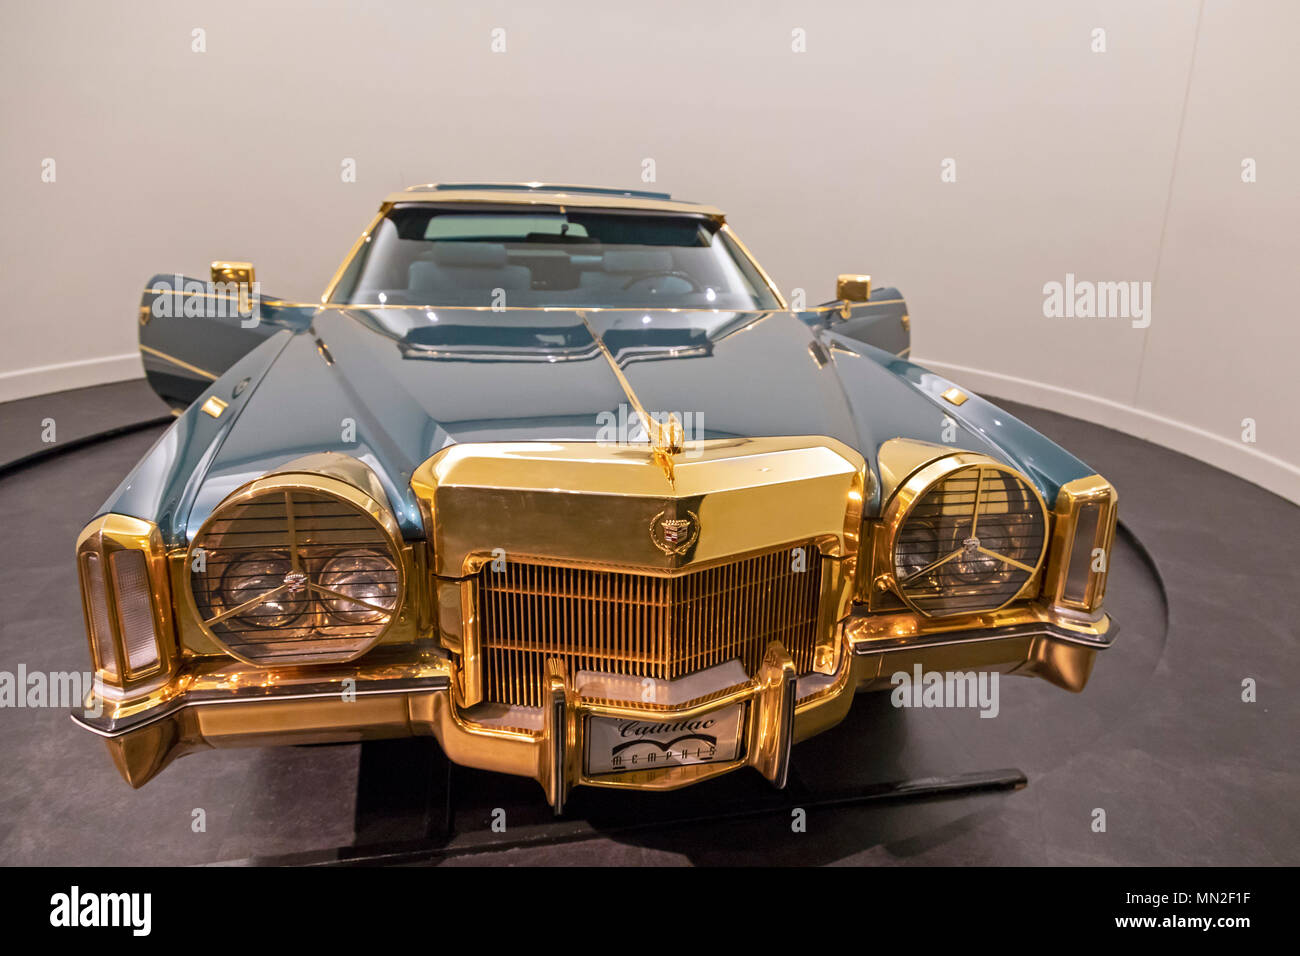 Memphis, Tennessee - Isaac Hayes' Cadillac on display at the Stax Museum of American Soul Music, the former location of Stax Records. - Stock Image